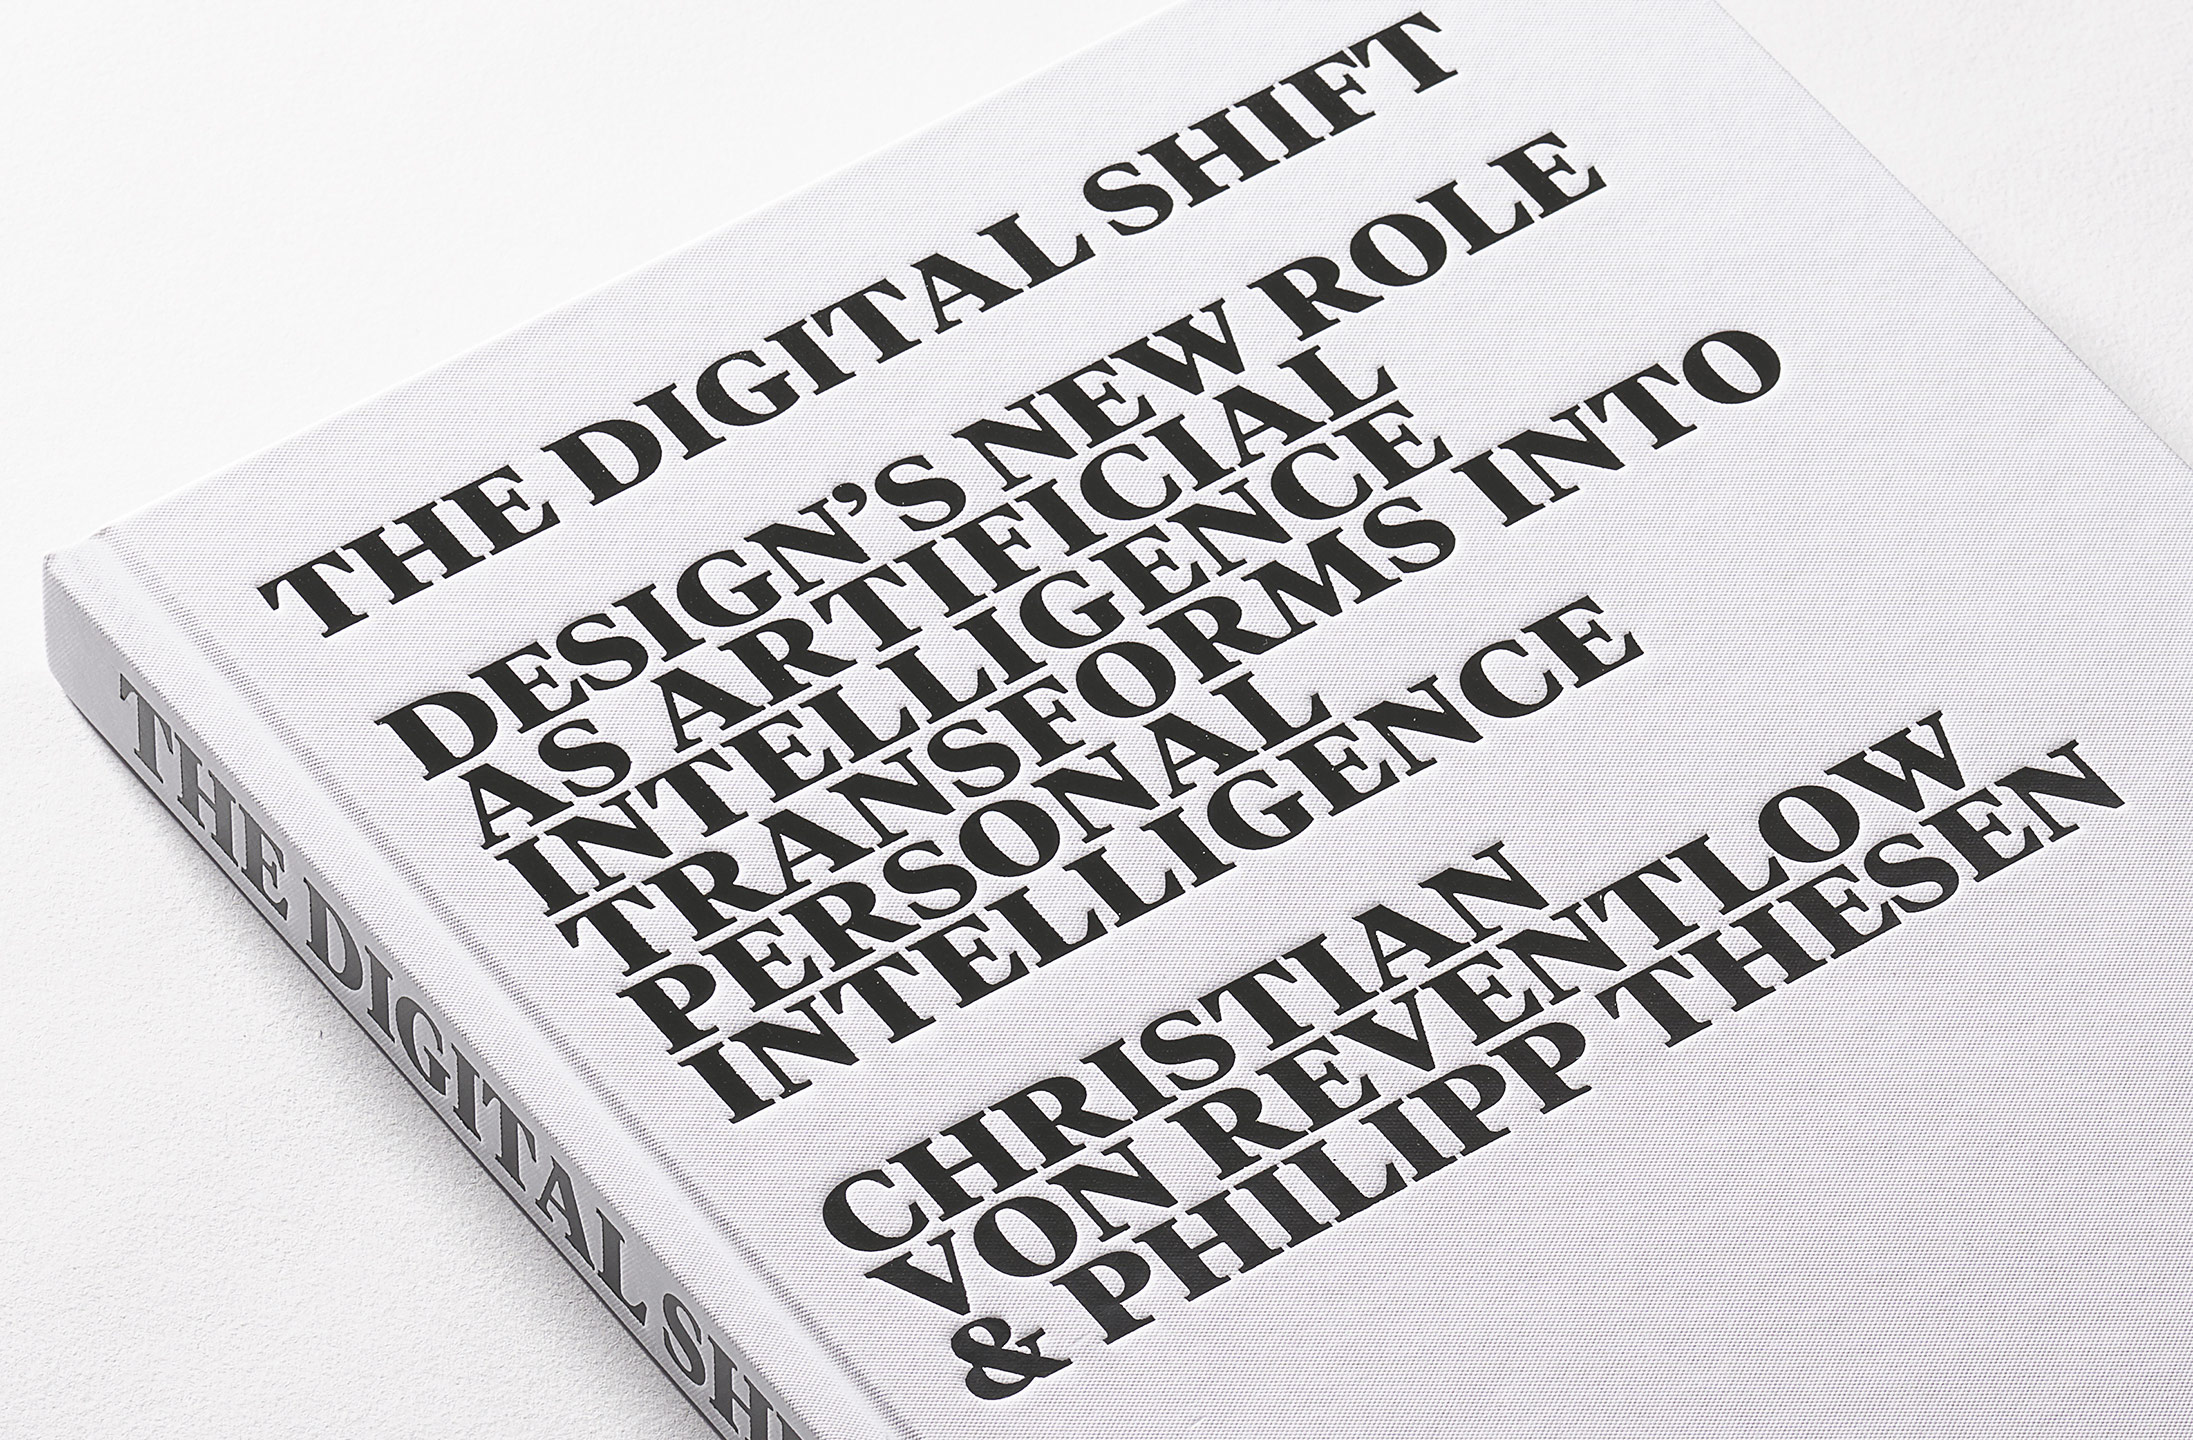 Book design for The Digital Shift — Steidl Books (2019)